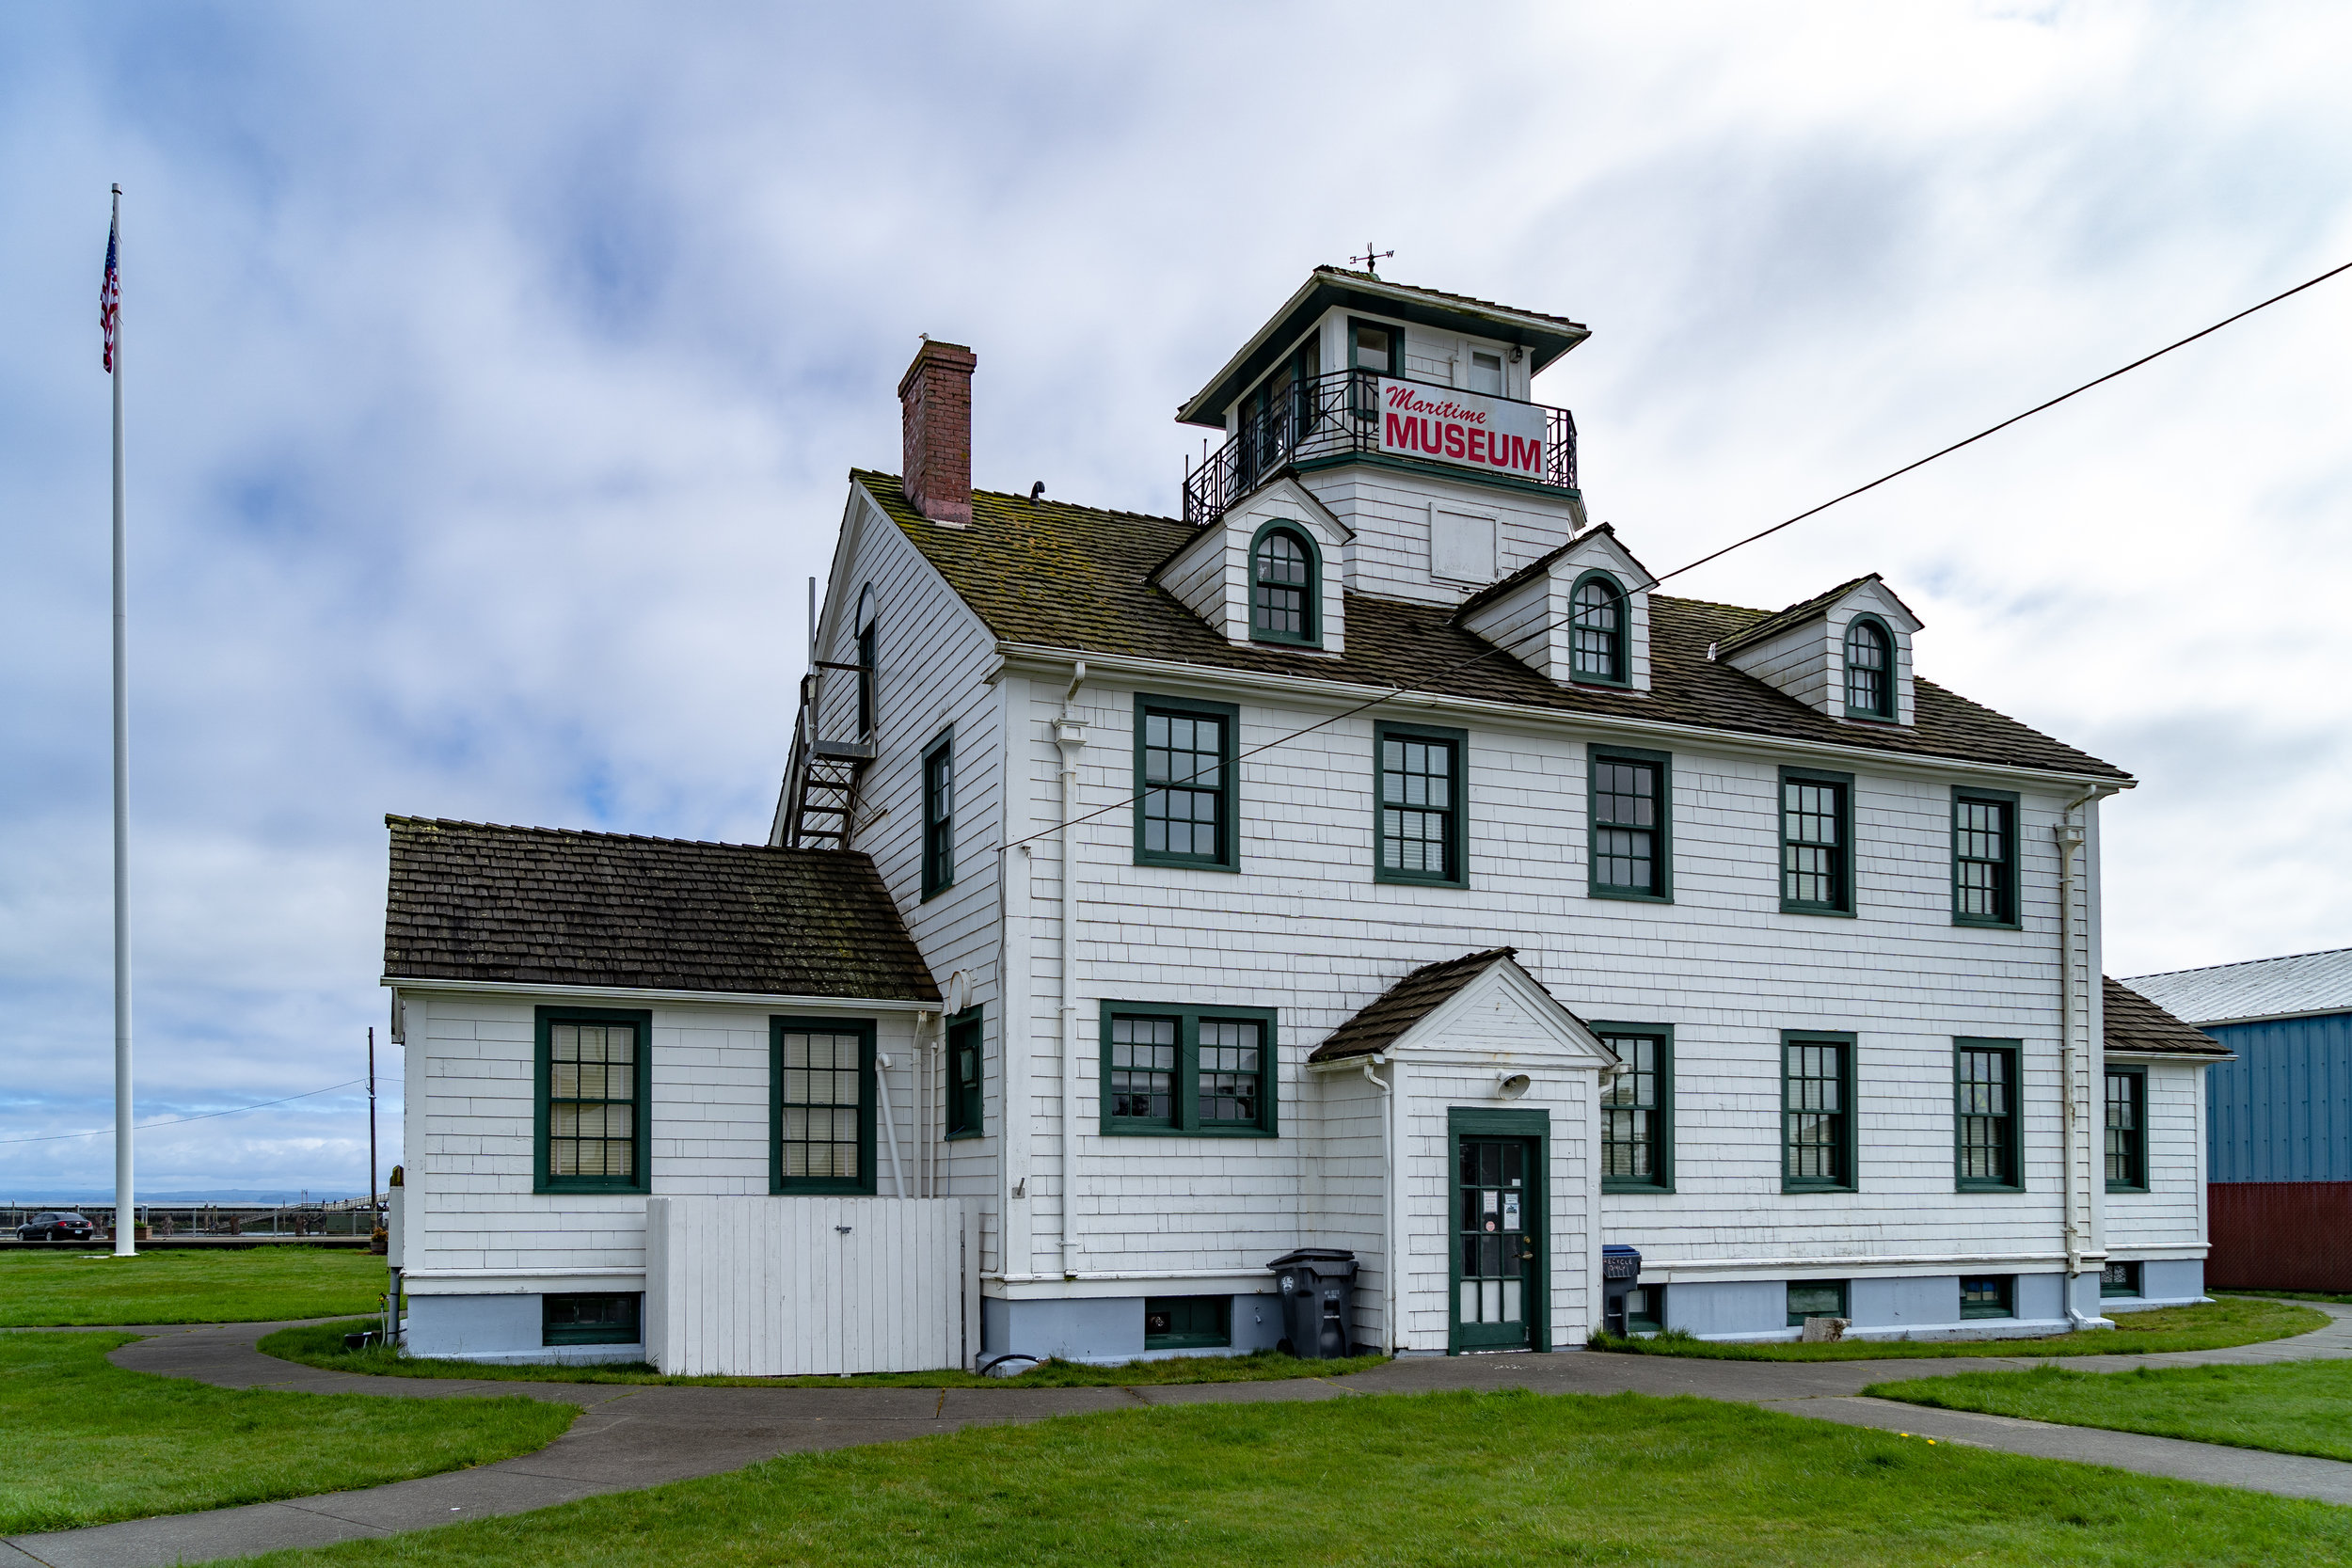 Museums - Visit the historic Westport Maritime Museum and learn about our exciting history.